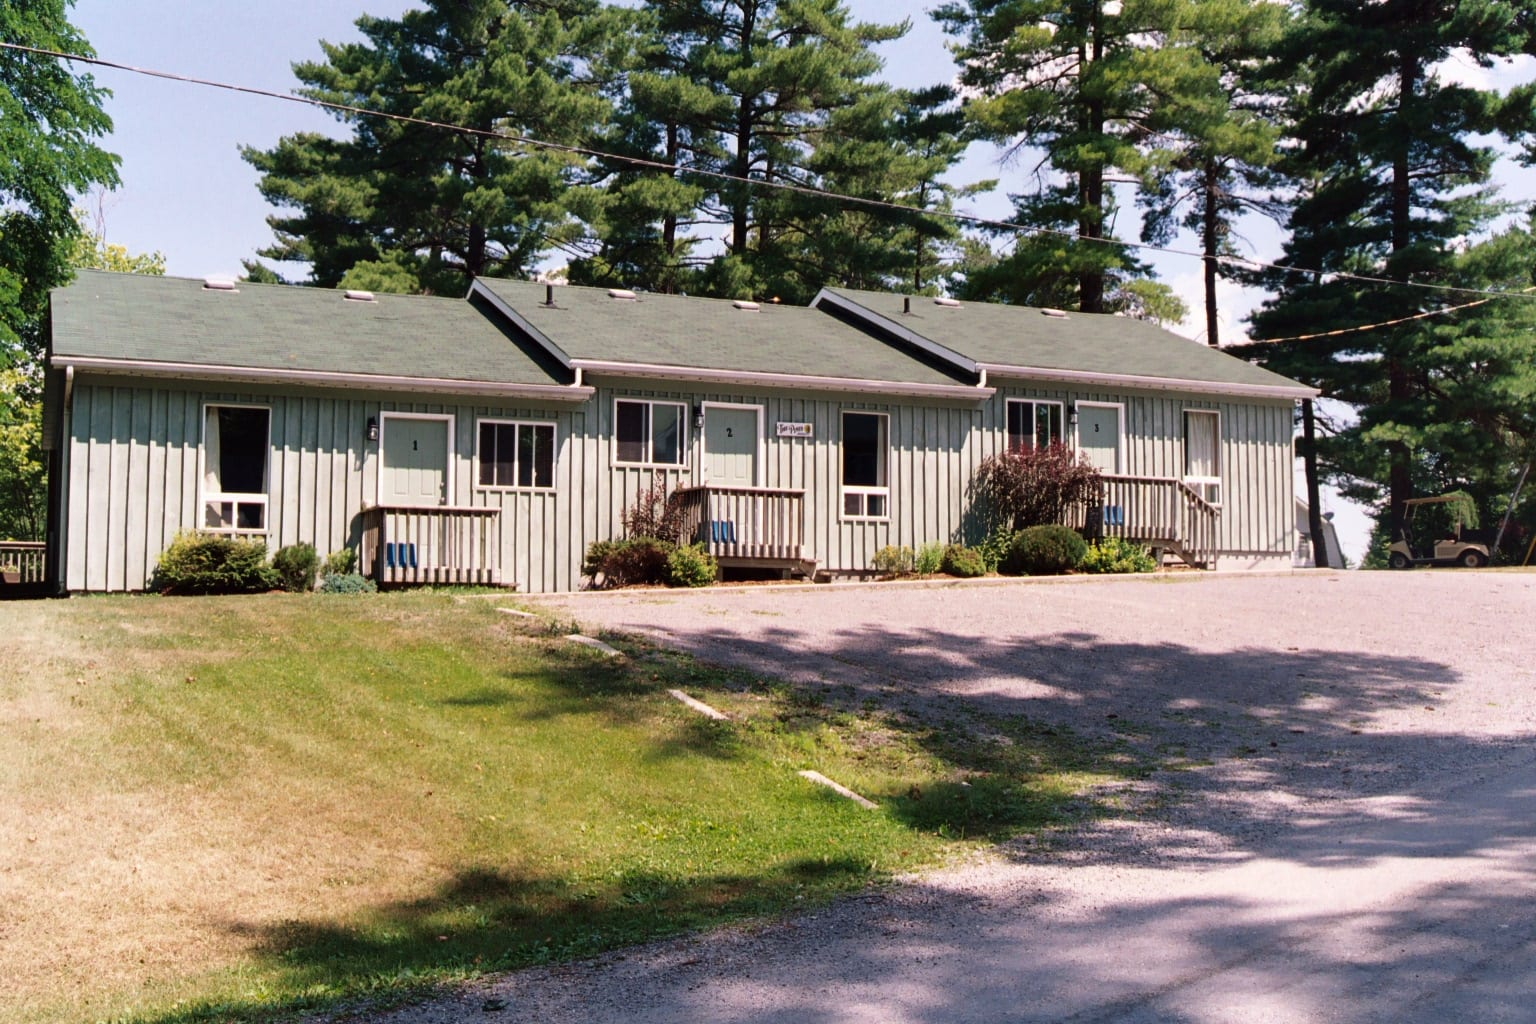 Pine Vista Resort Pines accommodation exterior